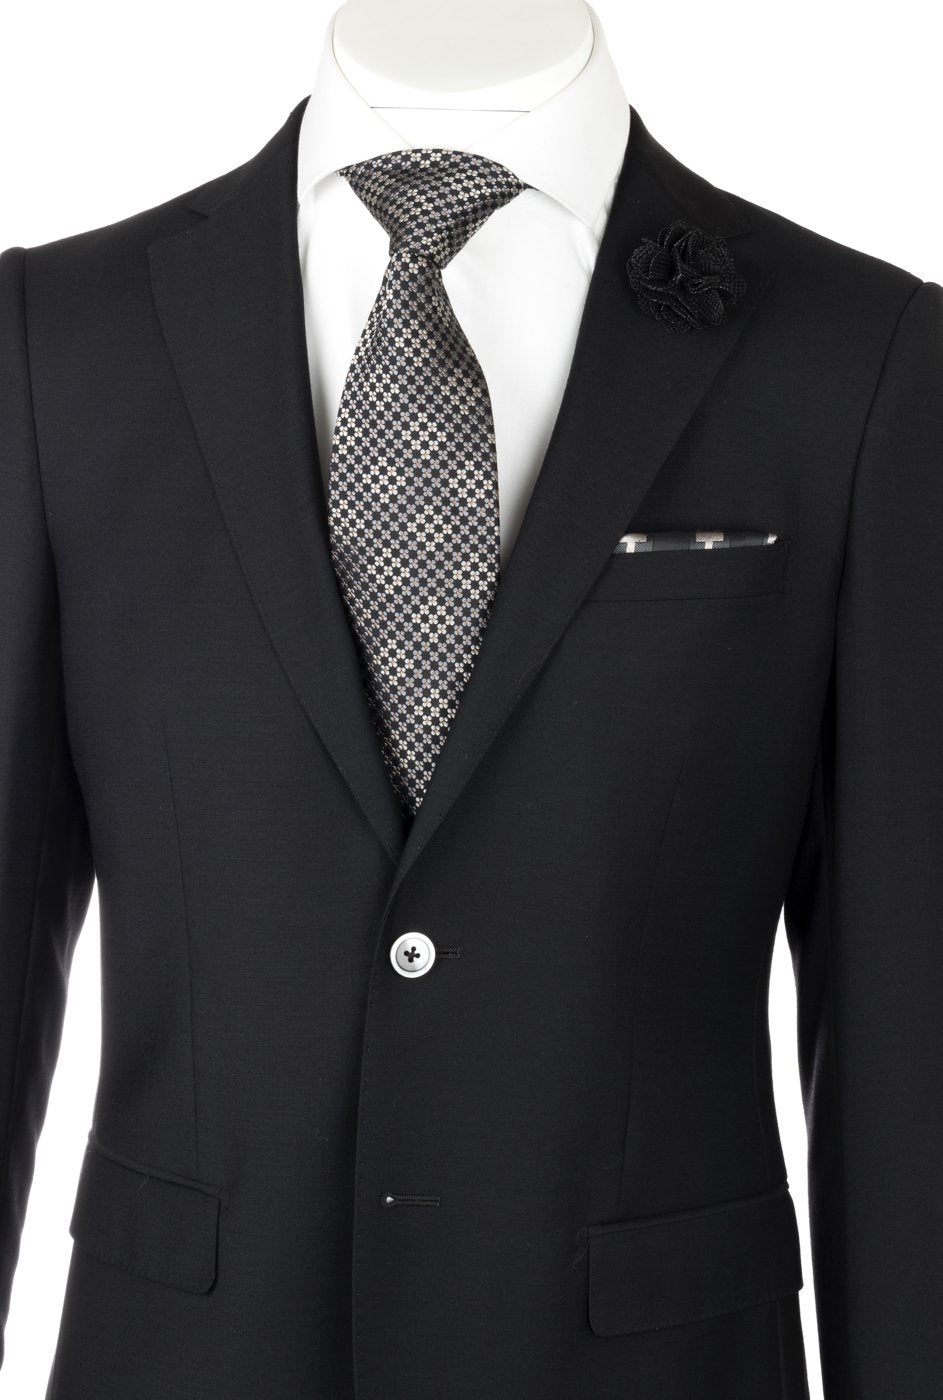 Porto Black, Slim Fit, Pure Wool Suit by Tiglio Luxe TIG1001